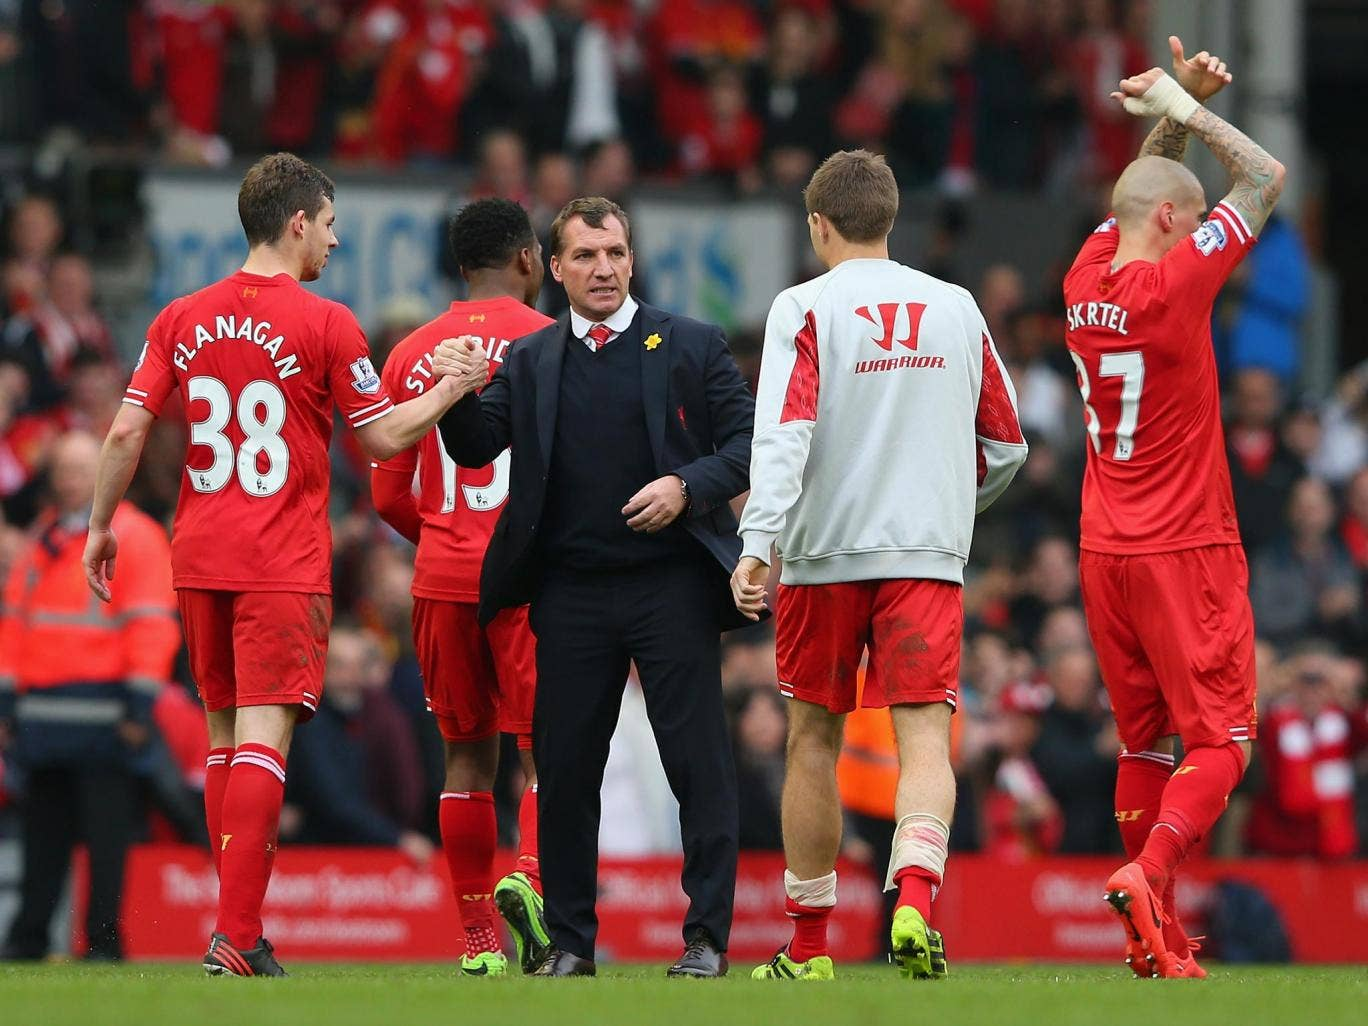 Brendan Rodgers celebrates Liverpool's 4-0 victory over Tottenham with his players